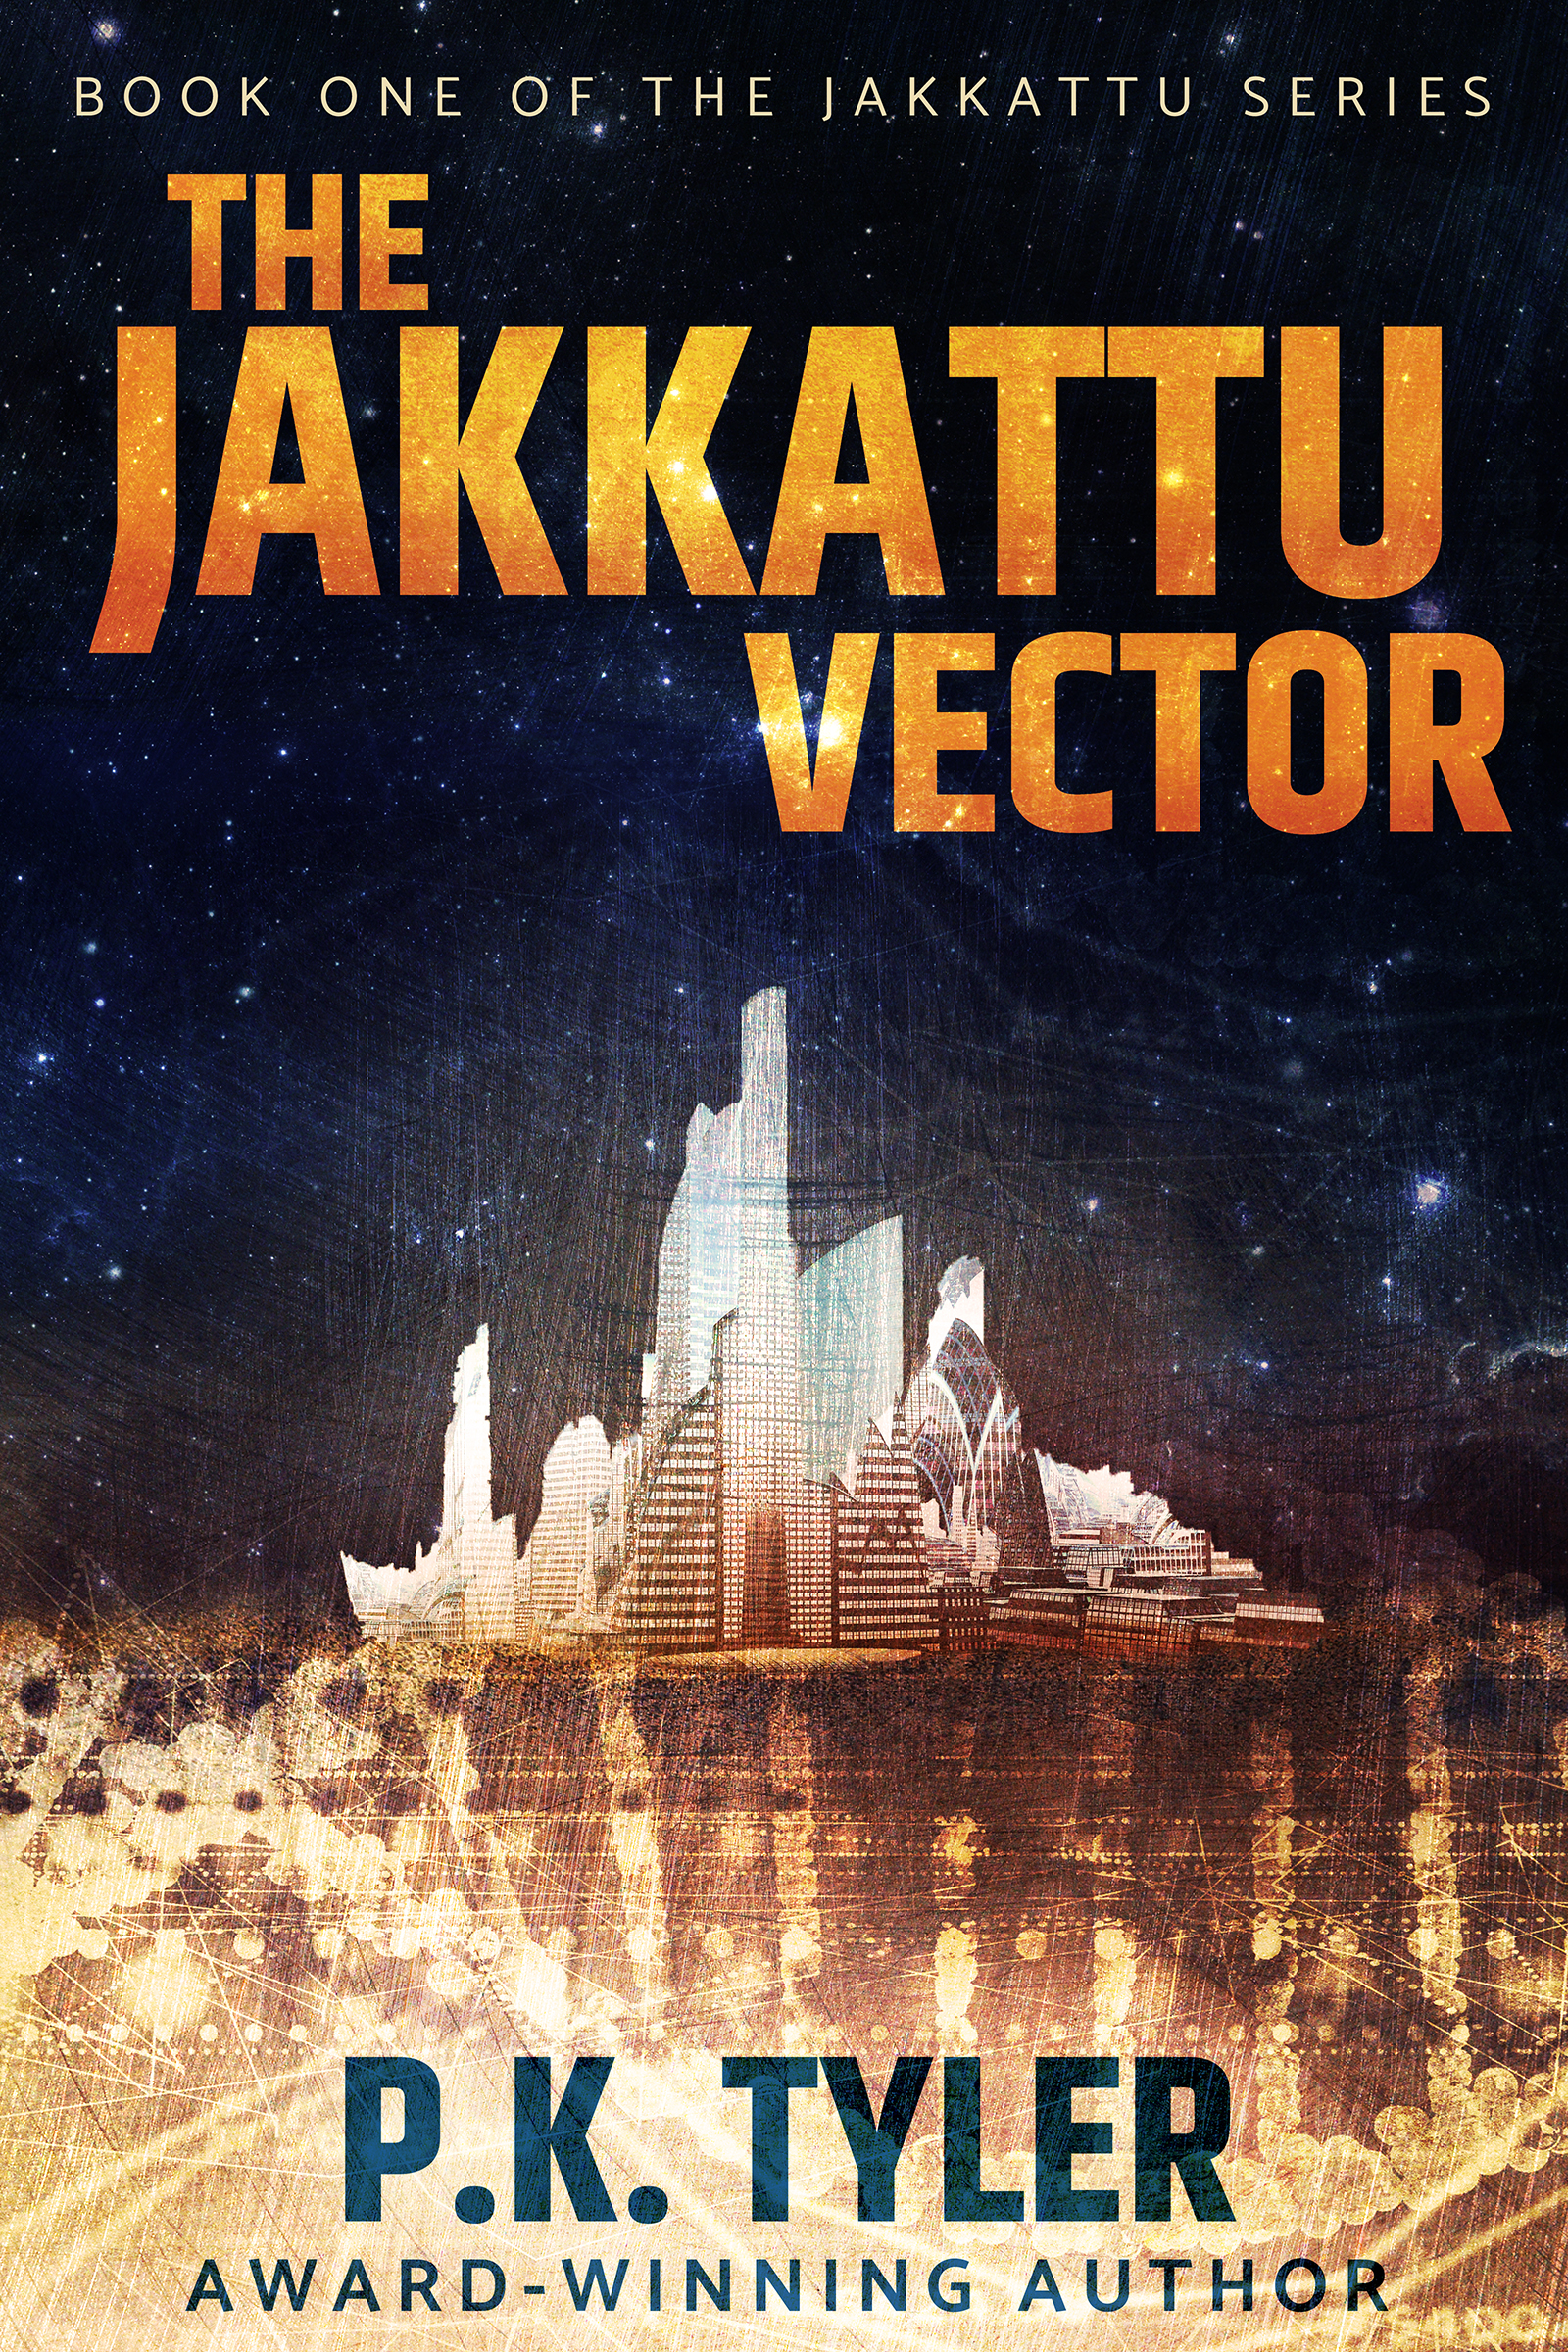 The Jakkattu Vector – Book One